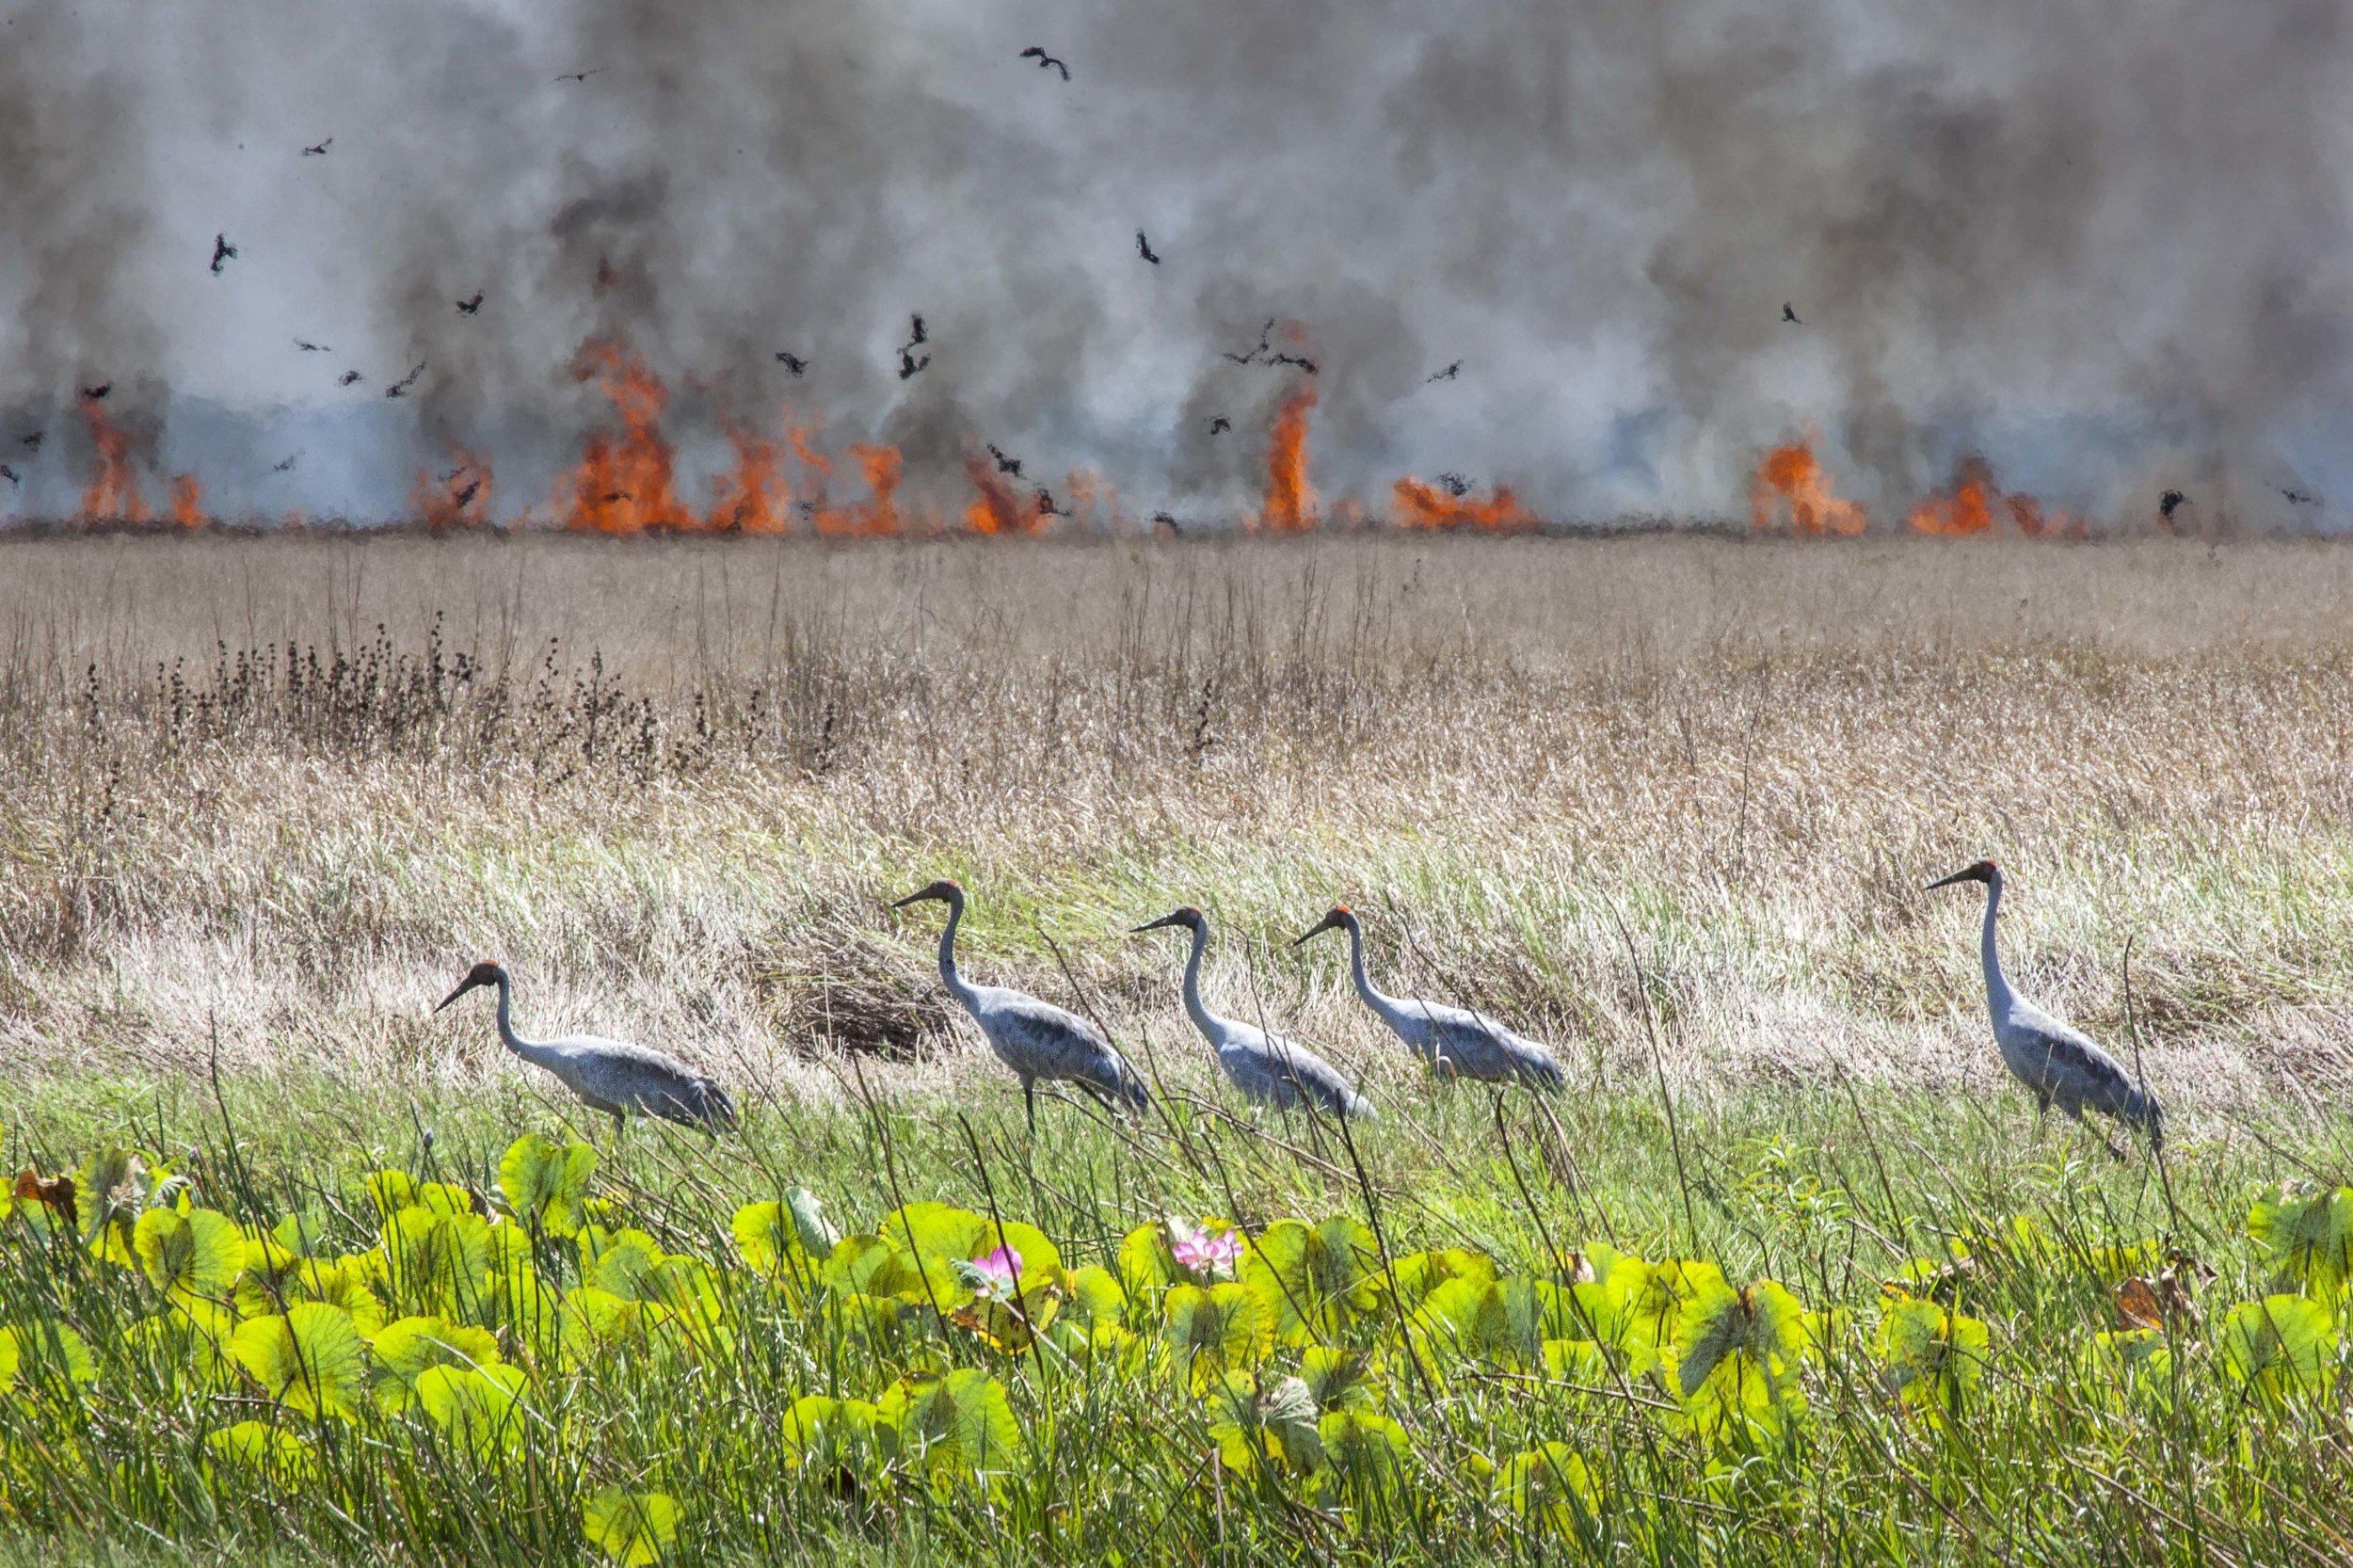 Brolga's flee fire by Cathryn Vasseleu